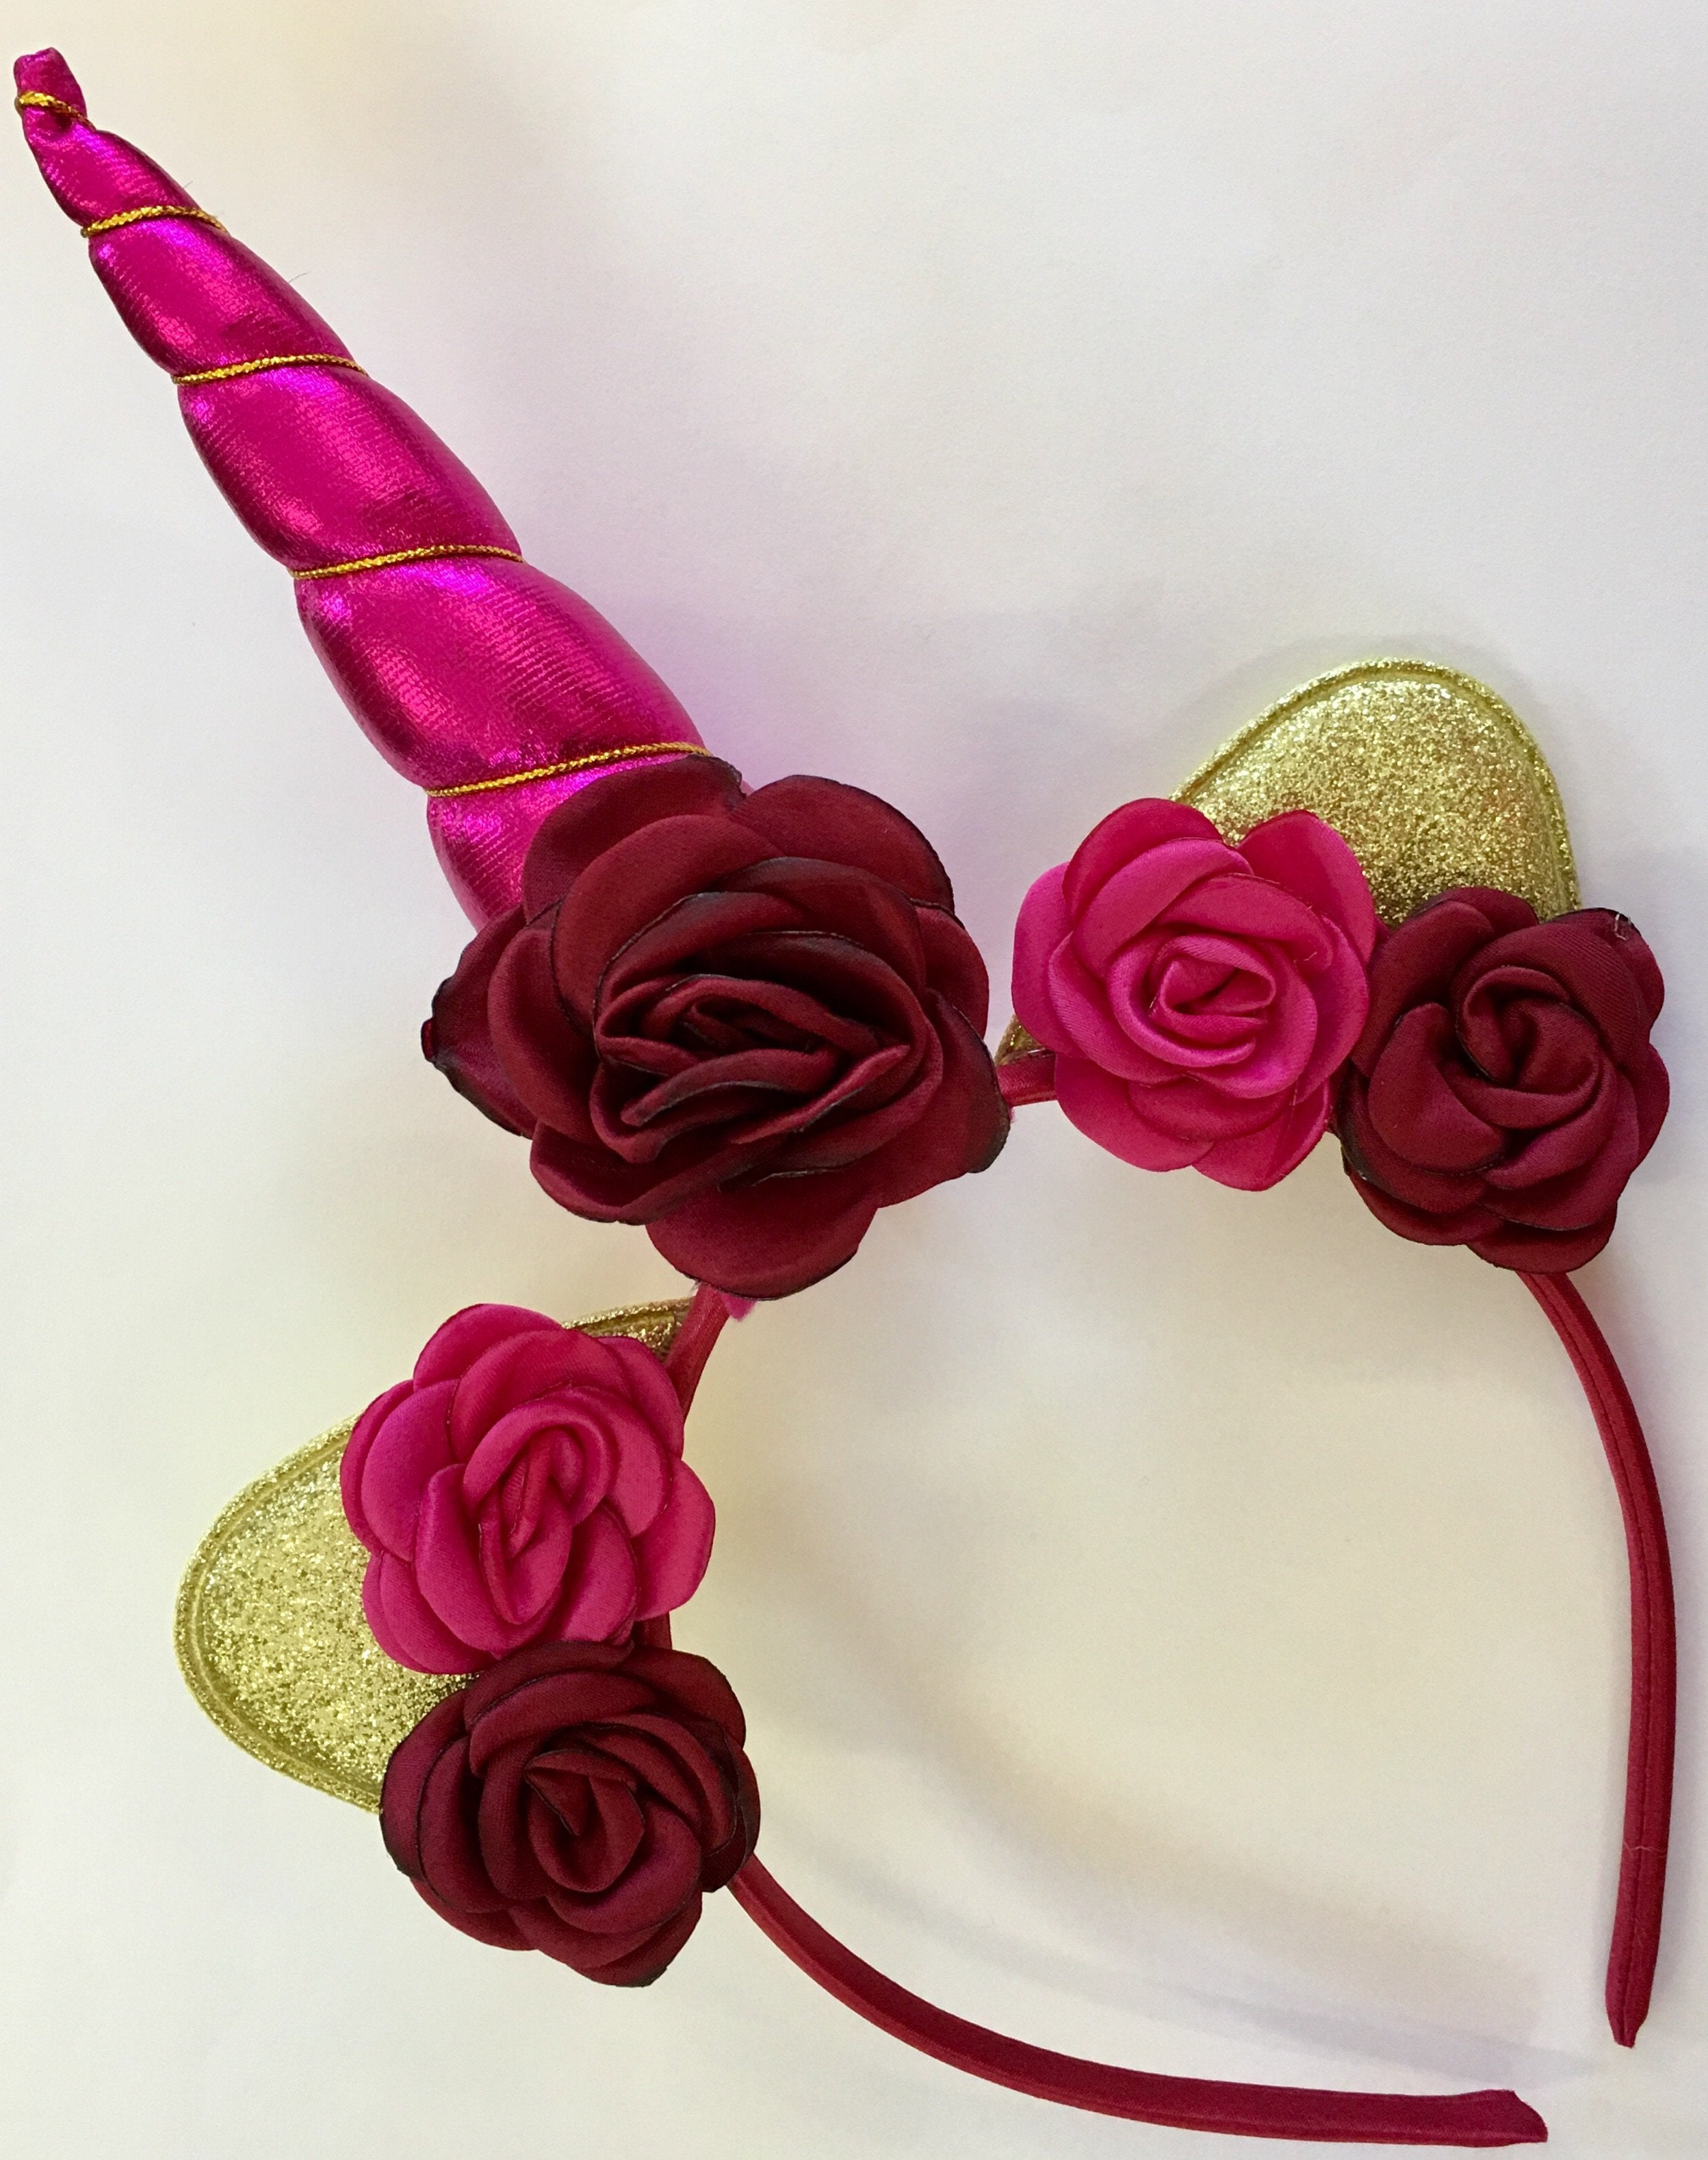 Unicorn Horn Headband Kit - Hot Pink - shabbyflowers.com